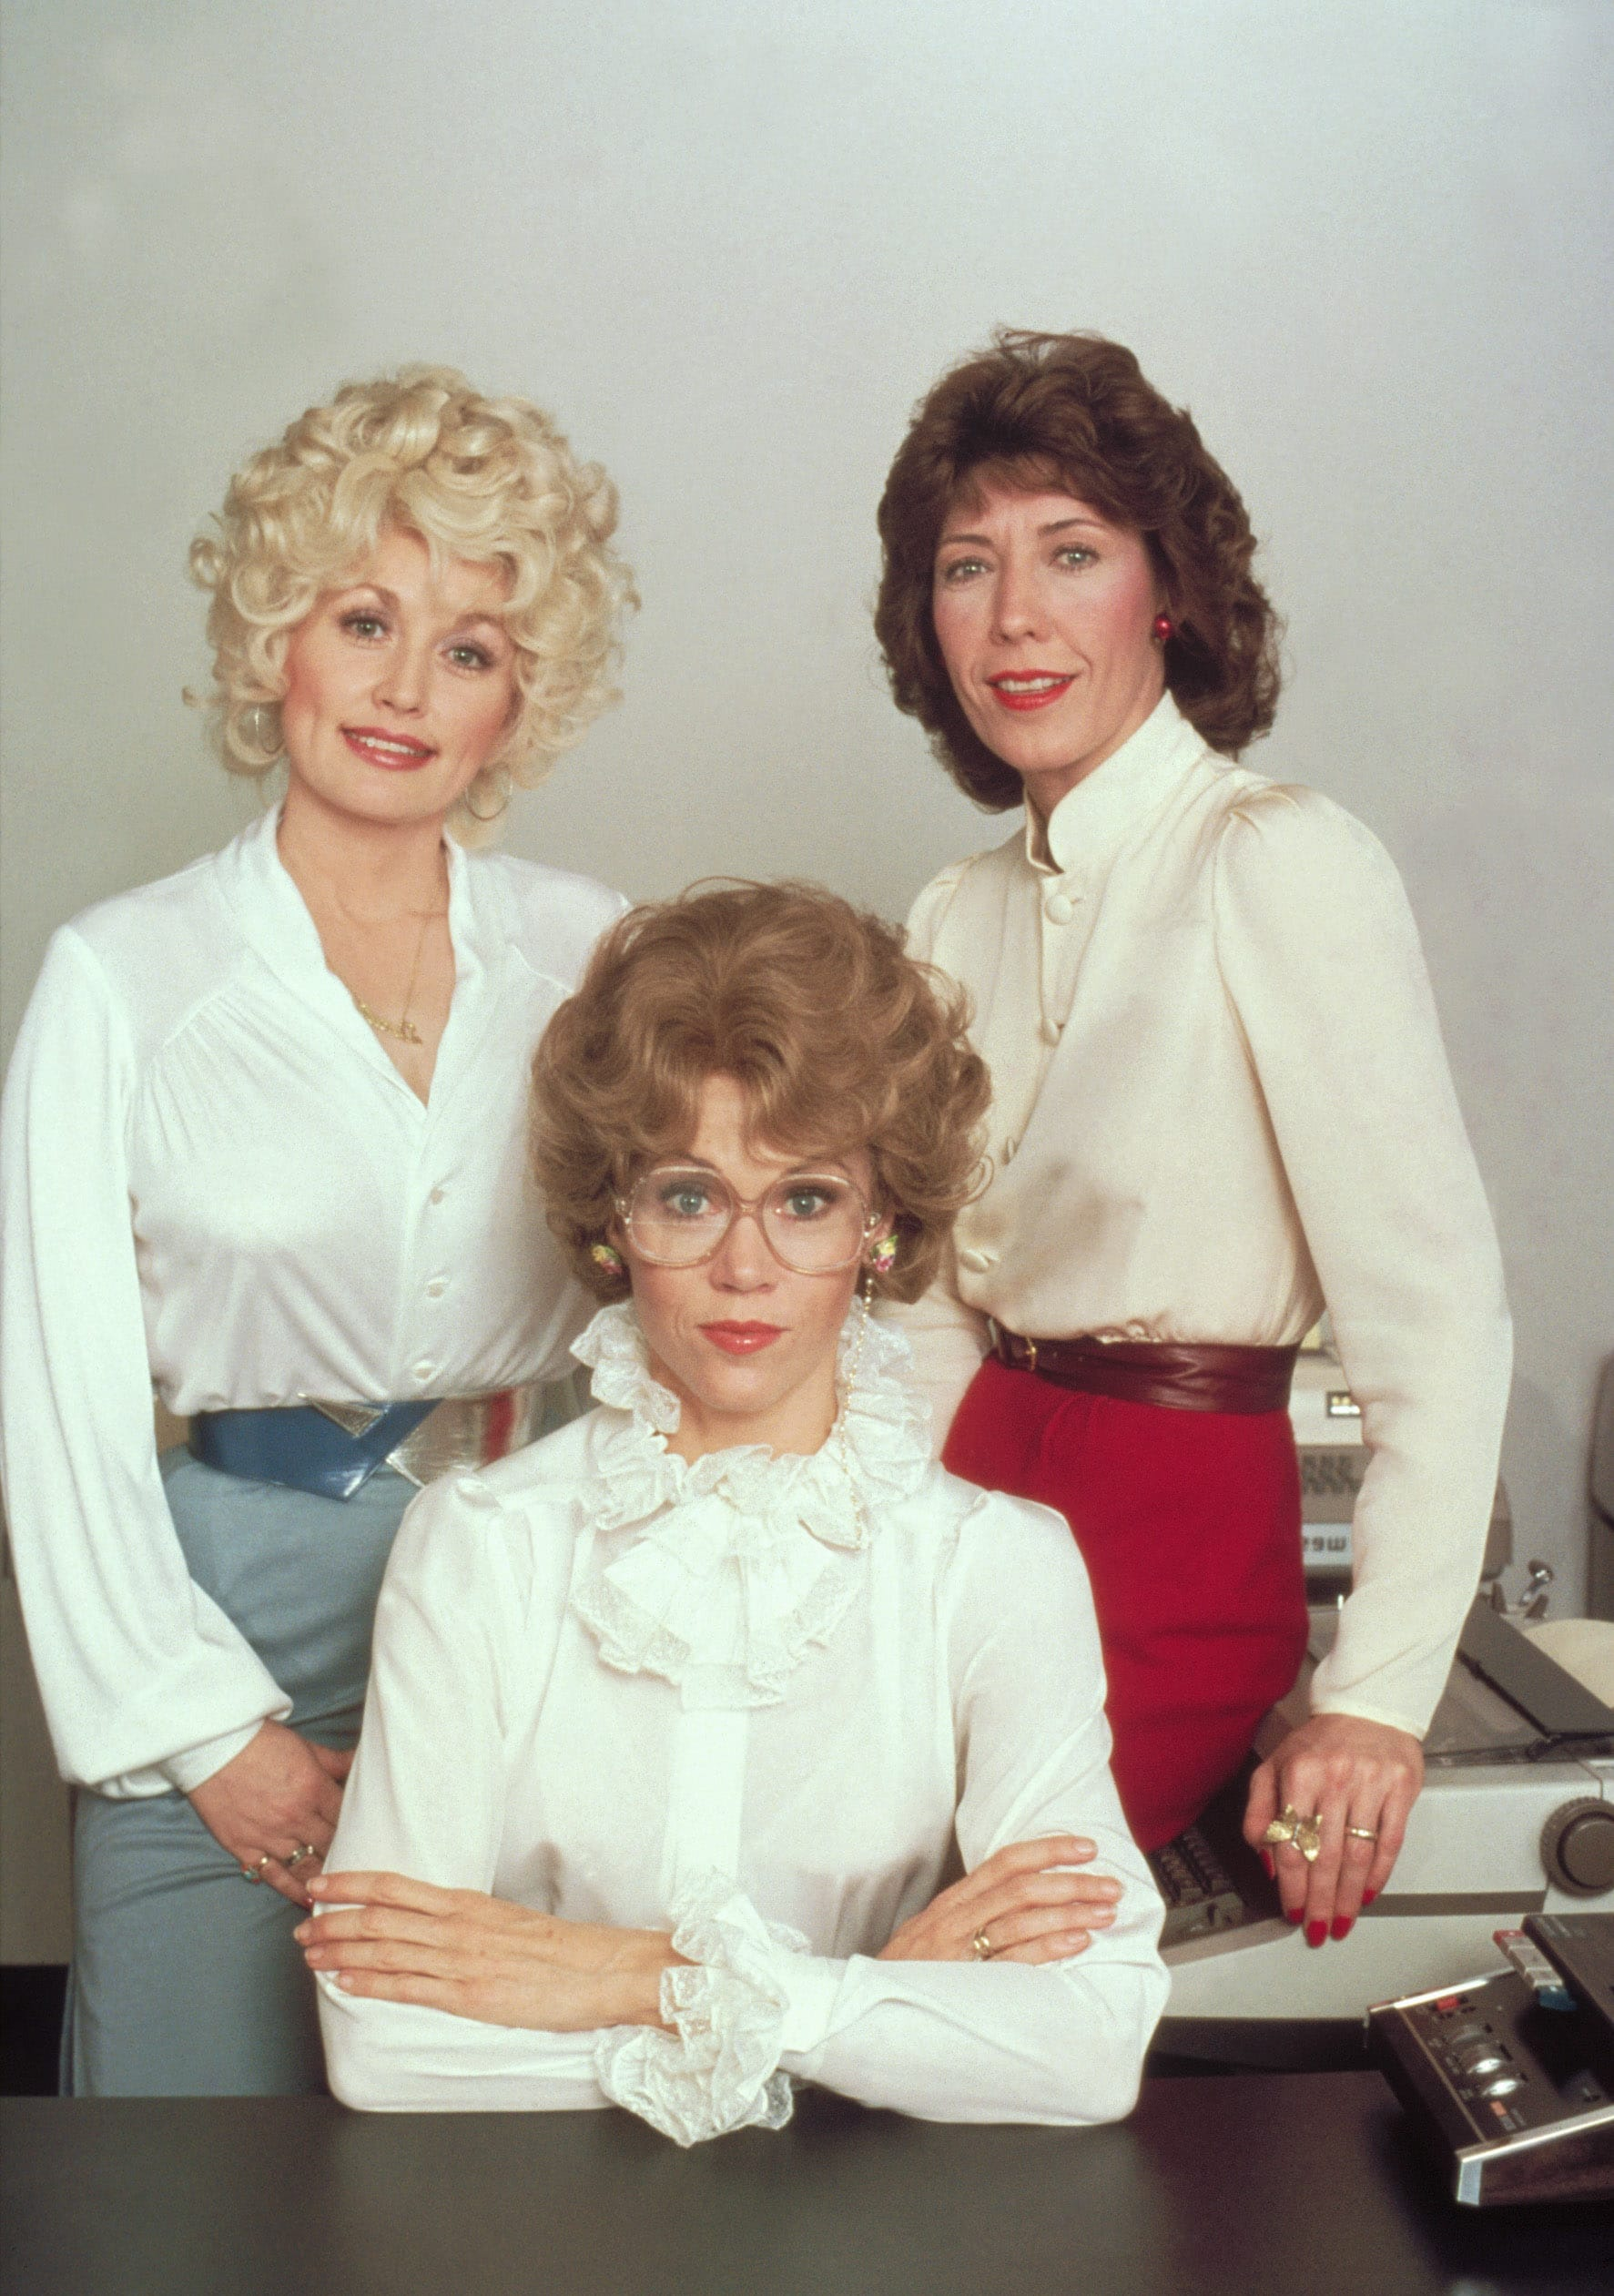 NINE TO FIVE, (aka 9 TO 5), from left: Dolly Parton, Jane Fonda, Lily Tomlin, 1980